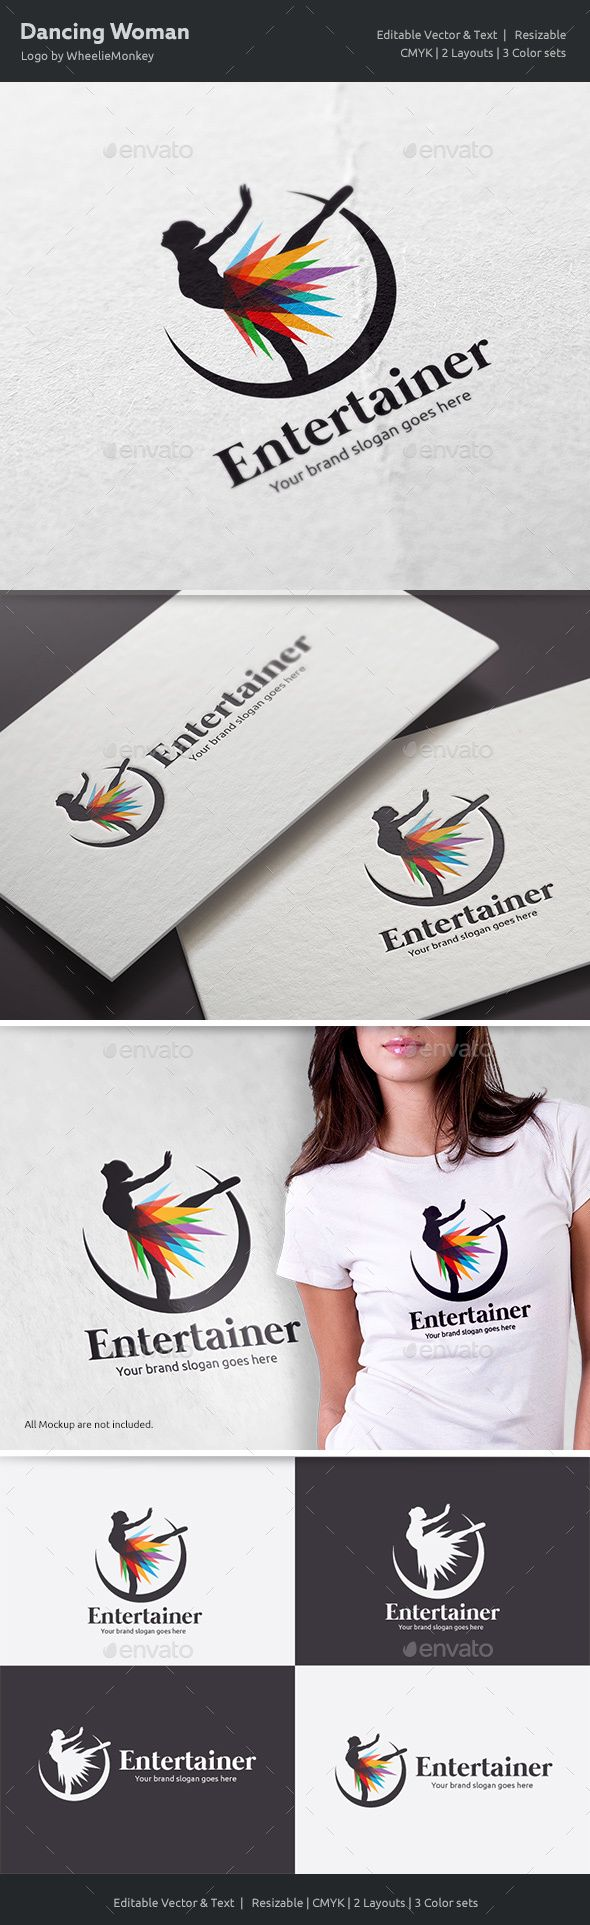 Dancing Woman Logo  — EPS Template #lady #clothing • Download ➝ https://graphicriver.net/item/dancing-woman-logo/18610836?ref=pxcr